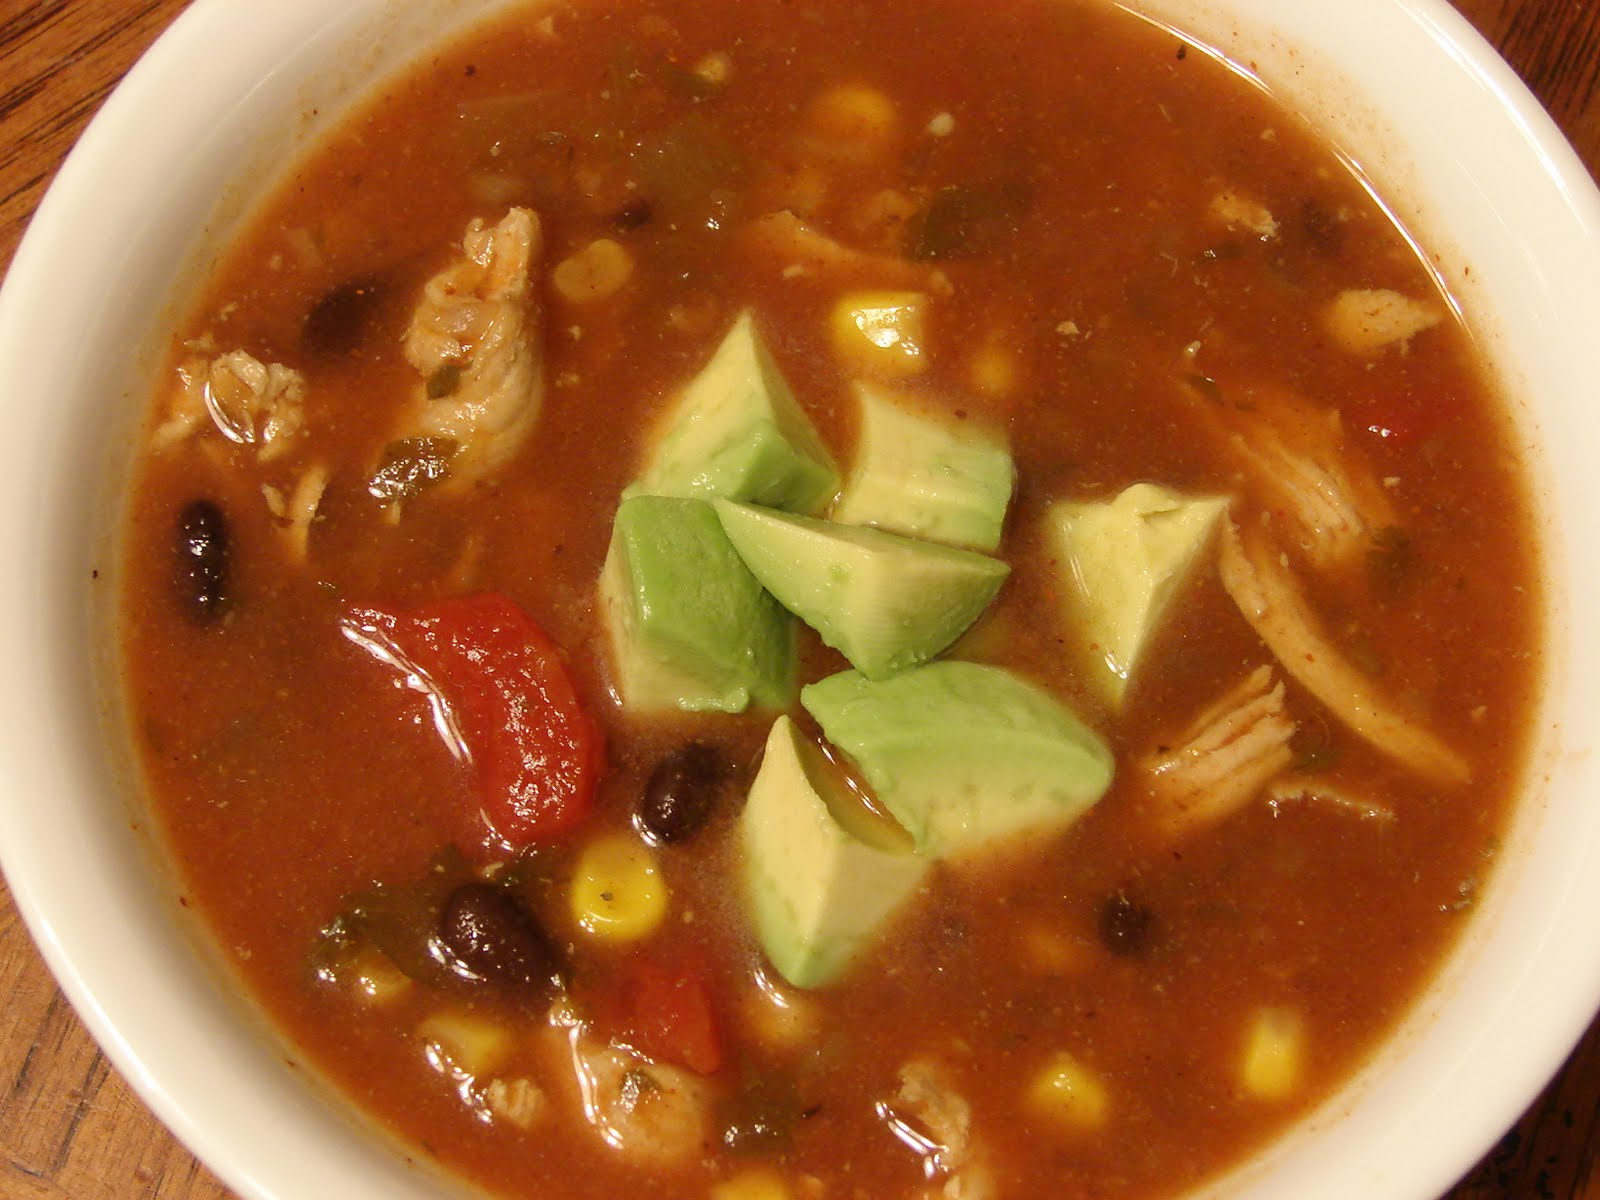 The Royal Cook: Who Ordered Winter? My 9 Favorite Soups